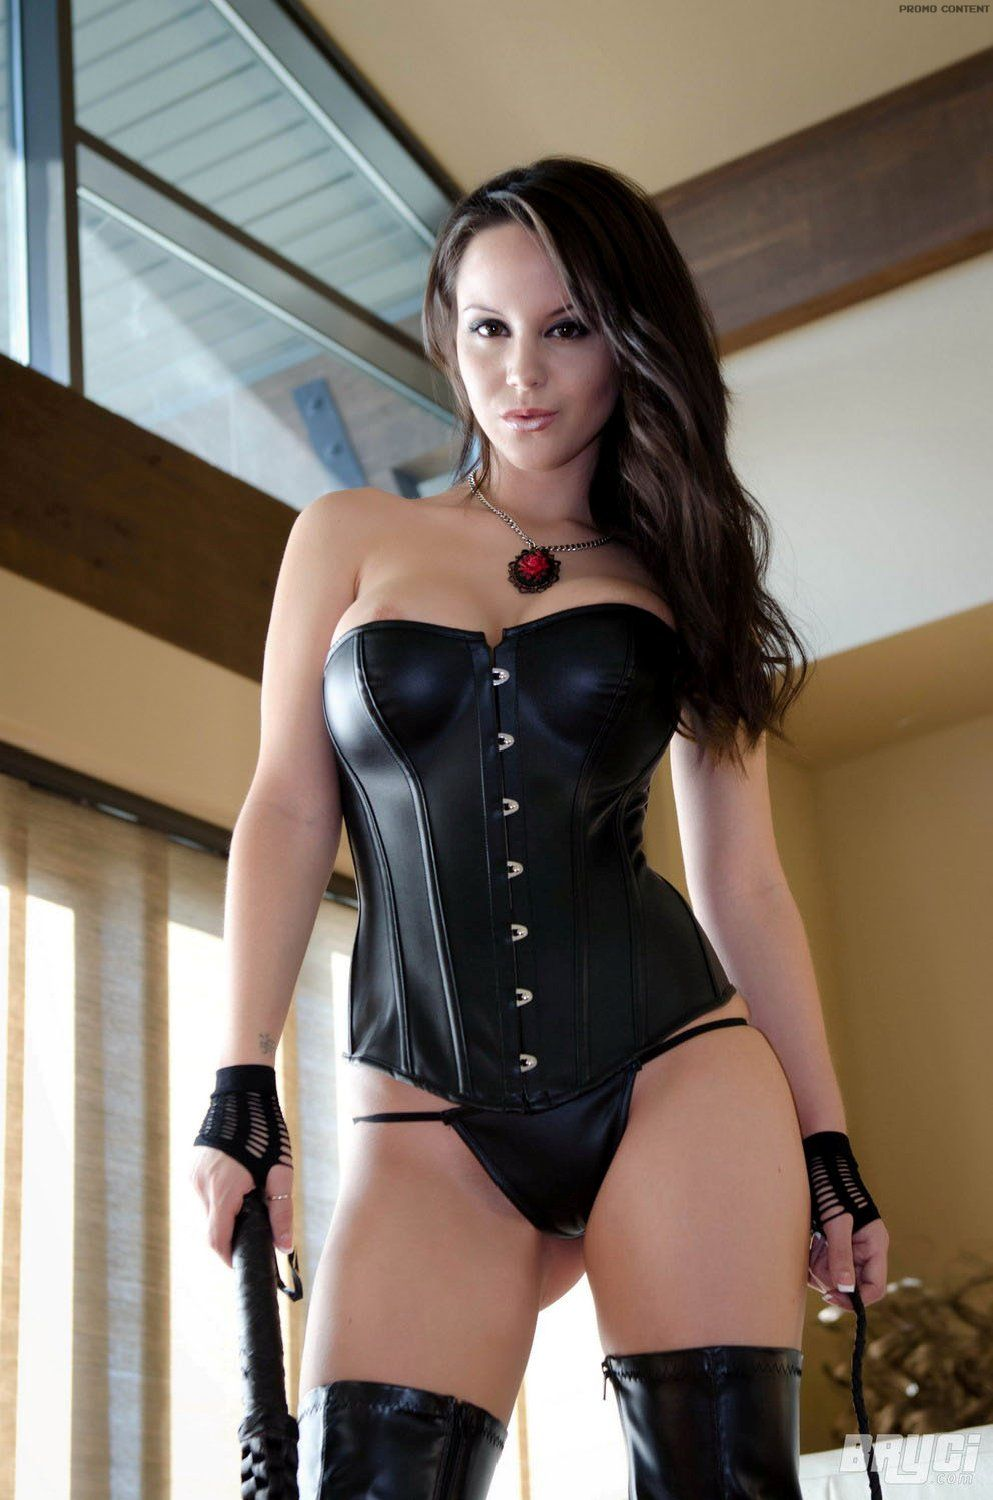 black-corsets-domination-whip